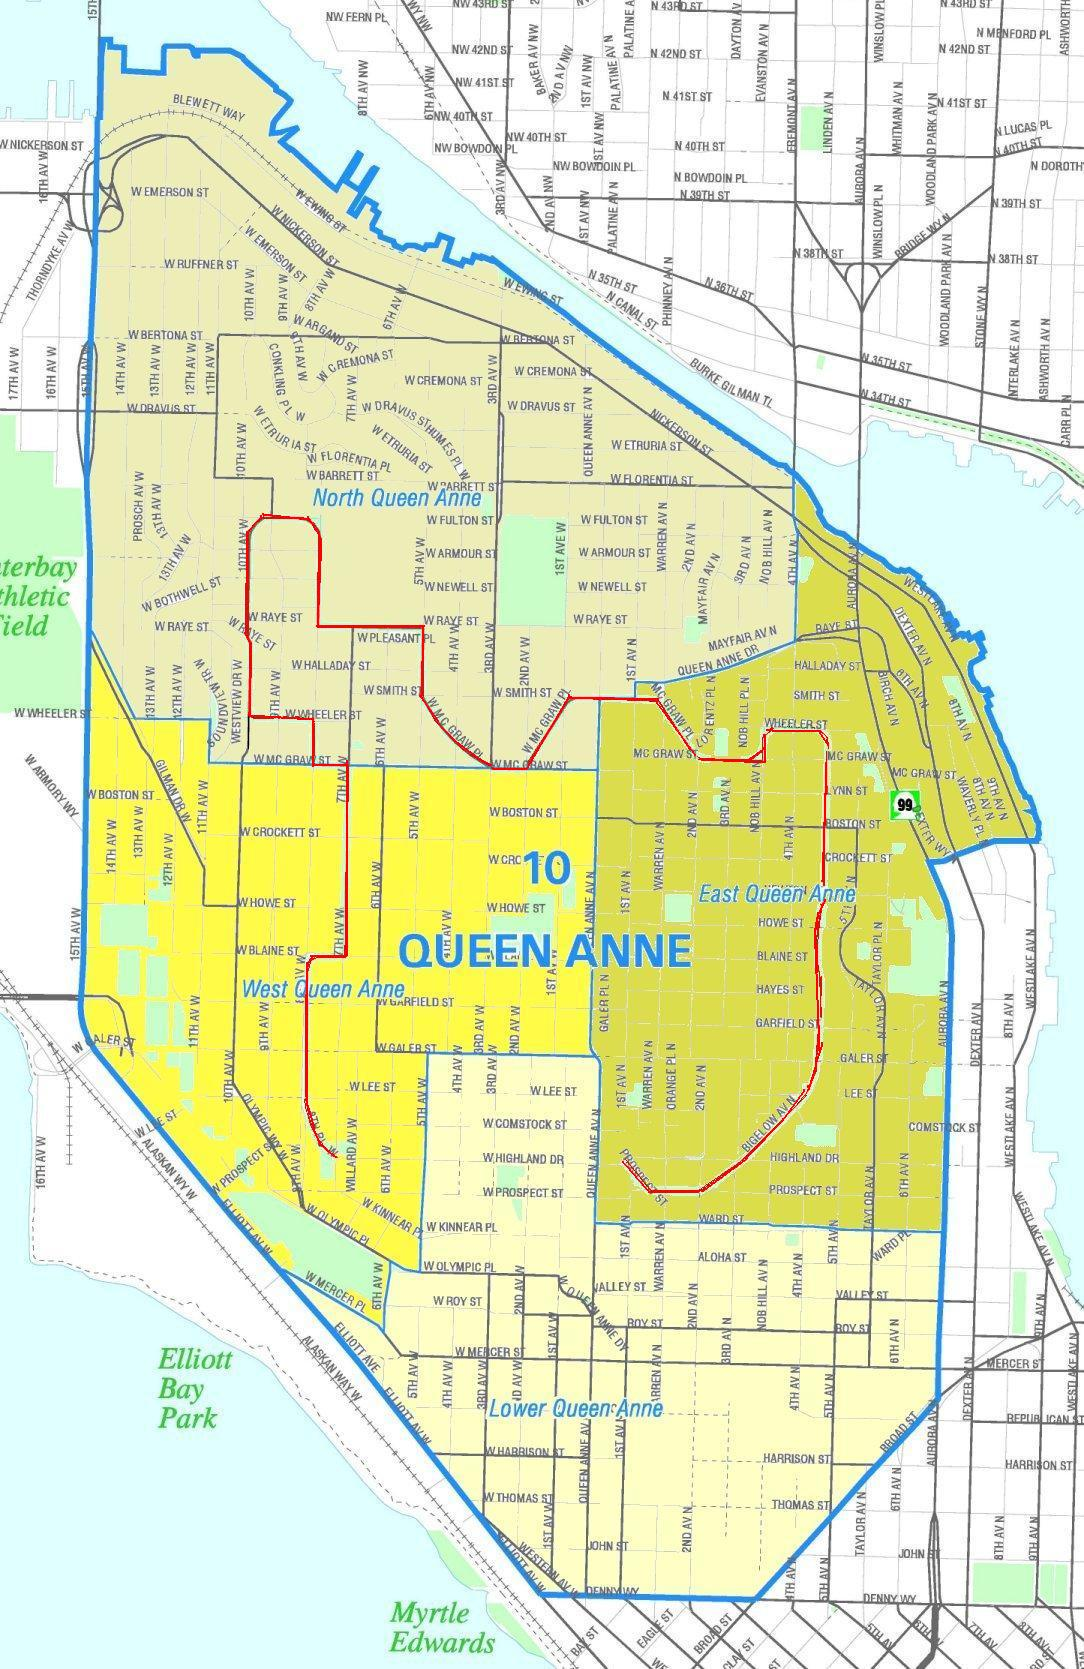 FileSeattle  Queen Anne Boulevard mapJPG  Wikimedia Commons